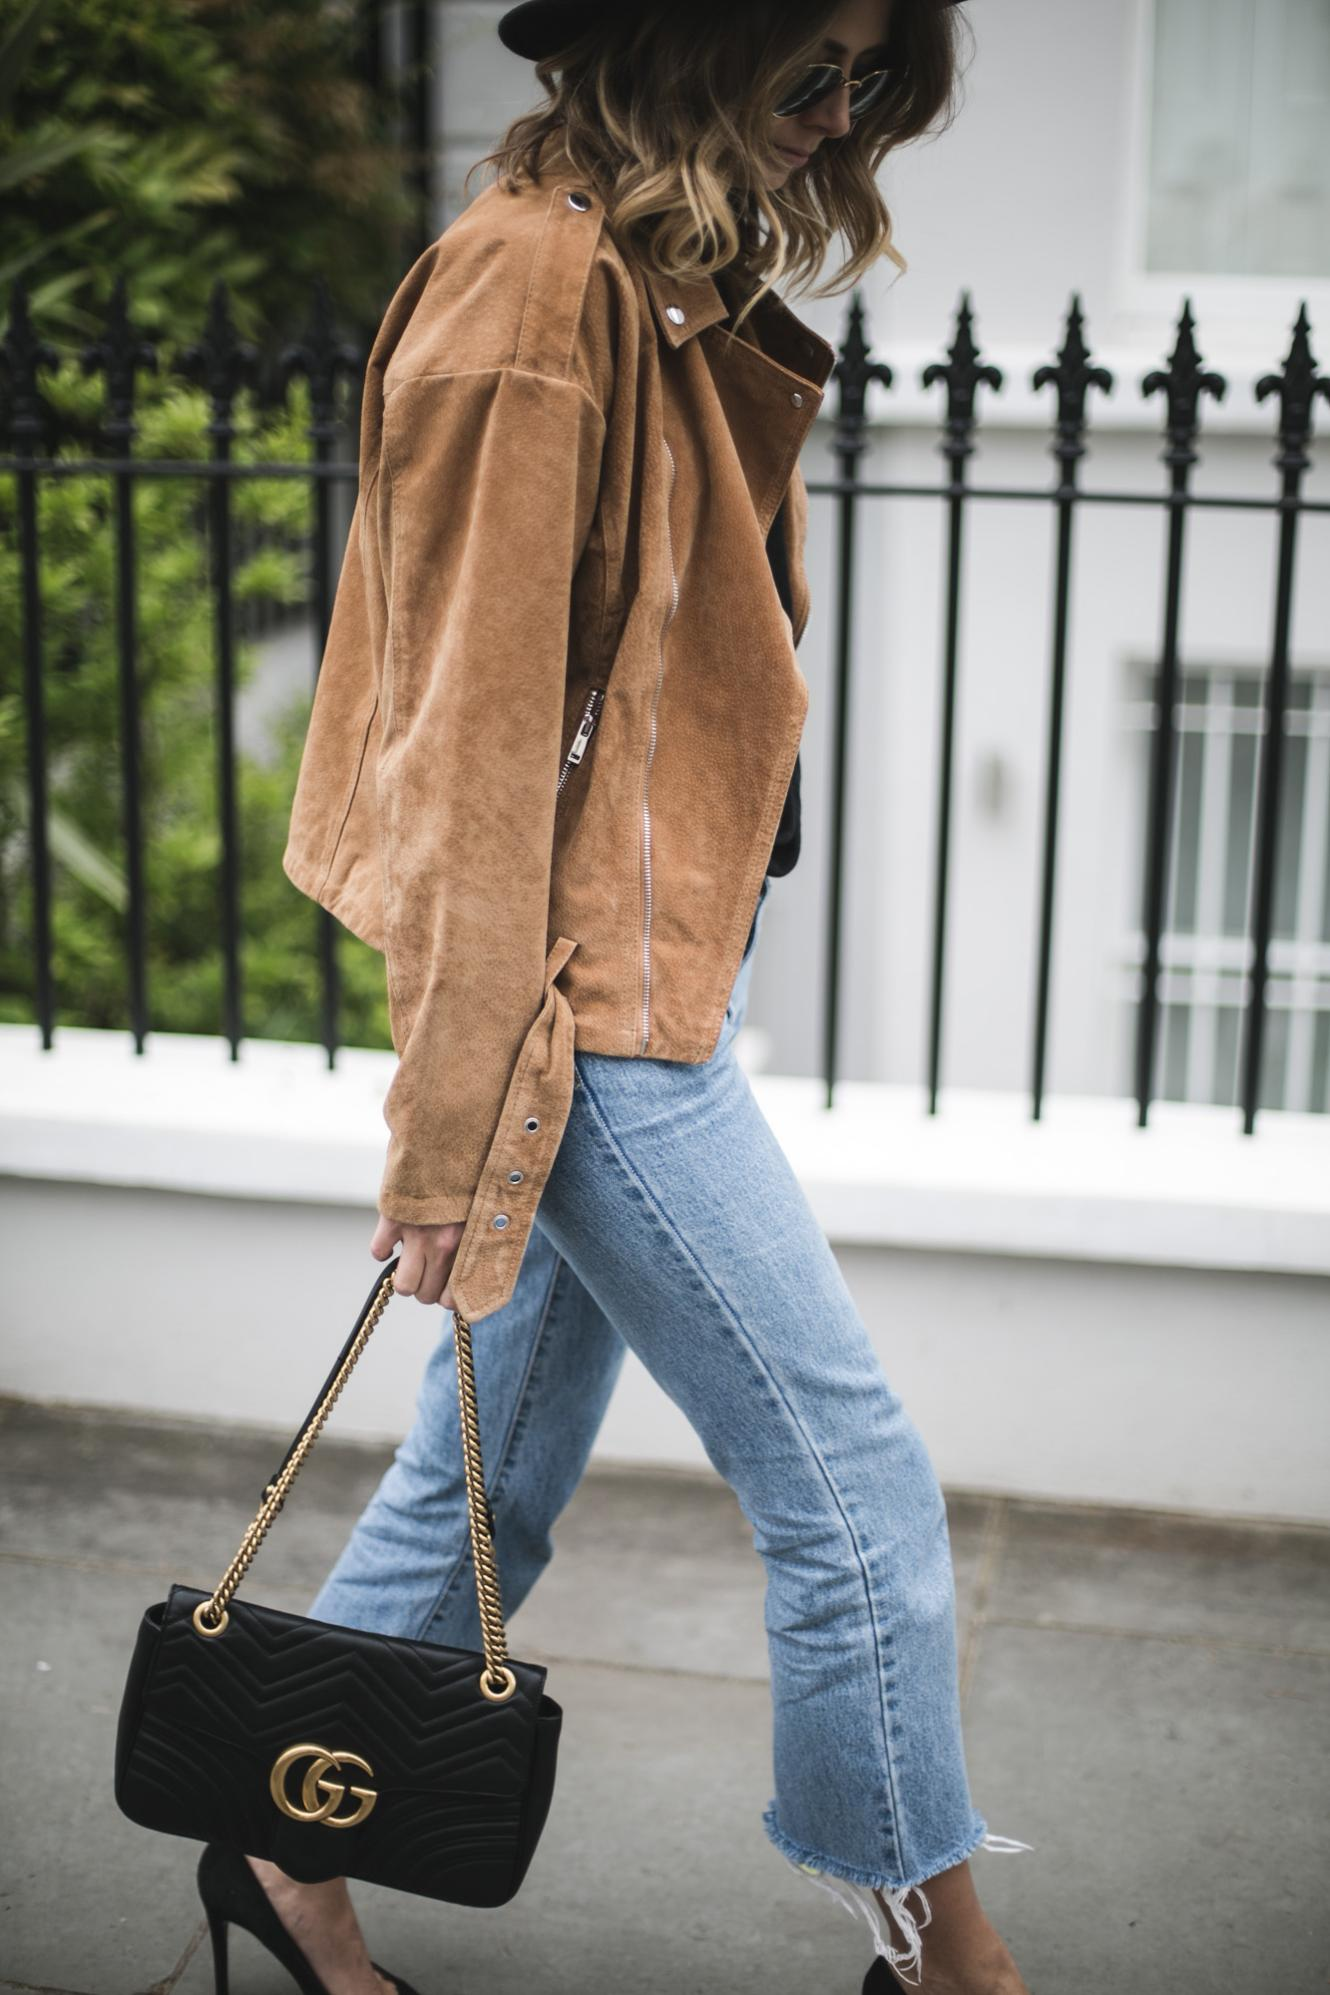 Emma Hill of EJSTYLE wears tan suede jacket, cropped flare jeans with raw hem, black leather Gucci Dionysus bag, chic casual outfit